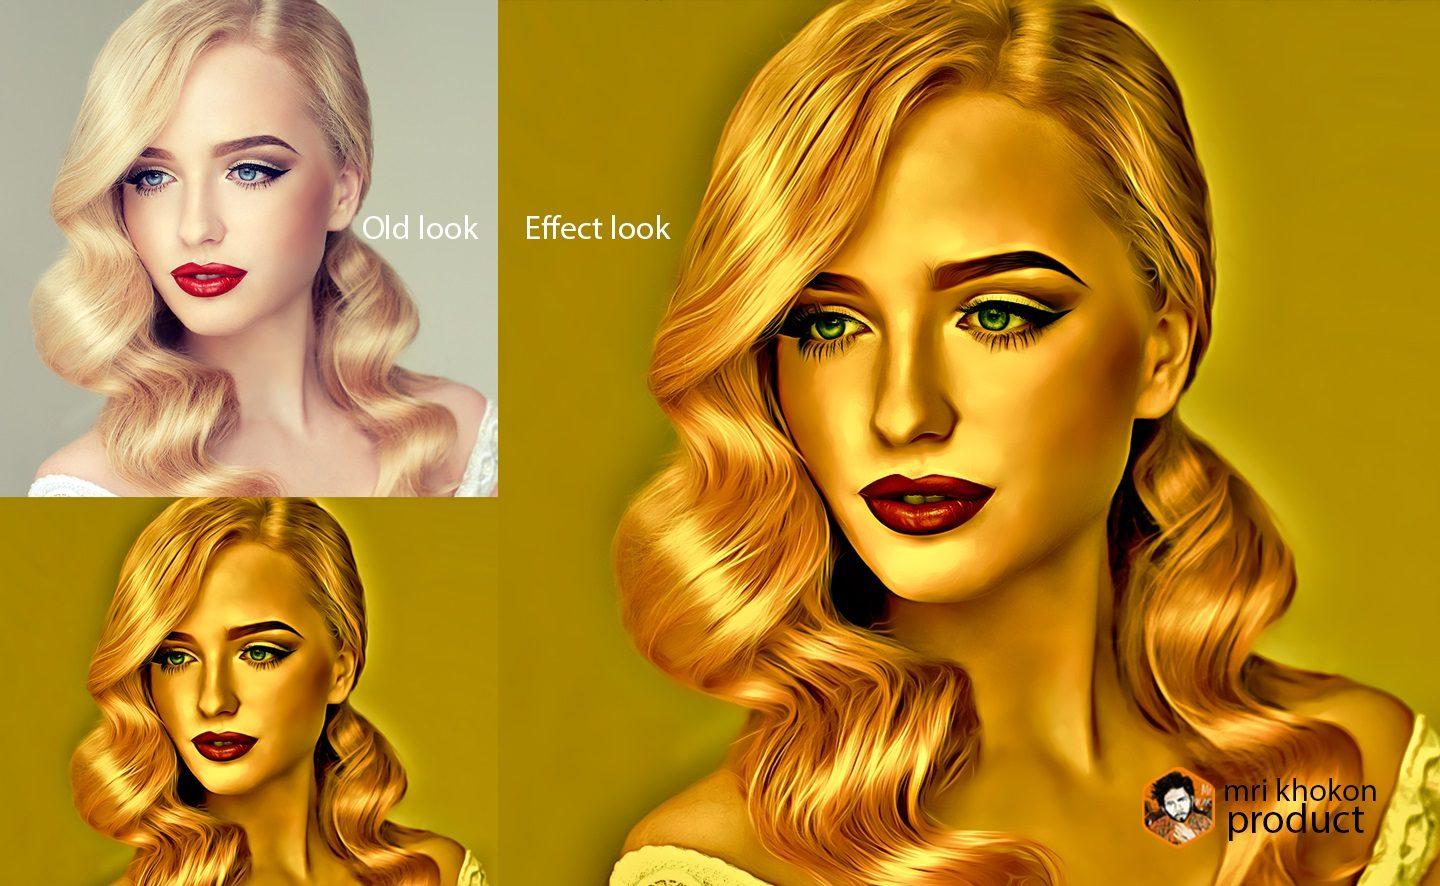 Gold Look Photoshop Effect example image 6